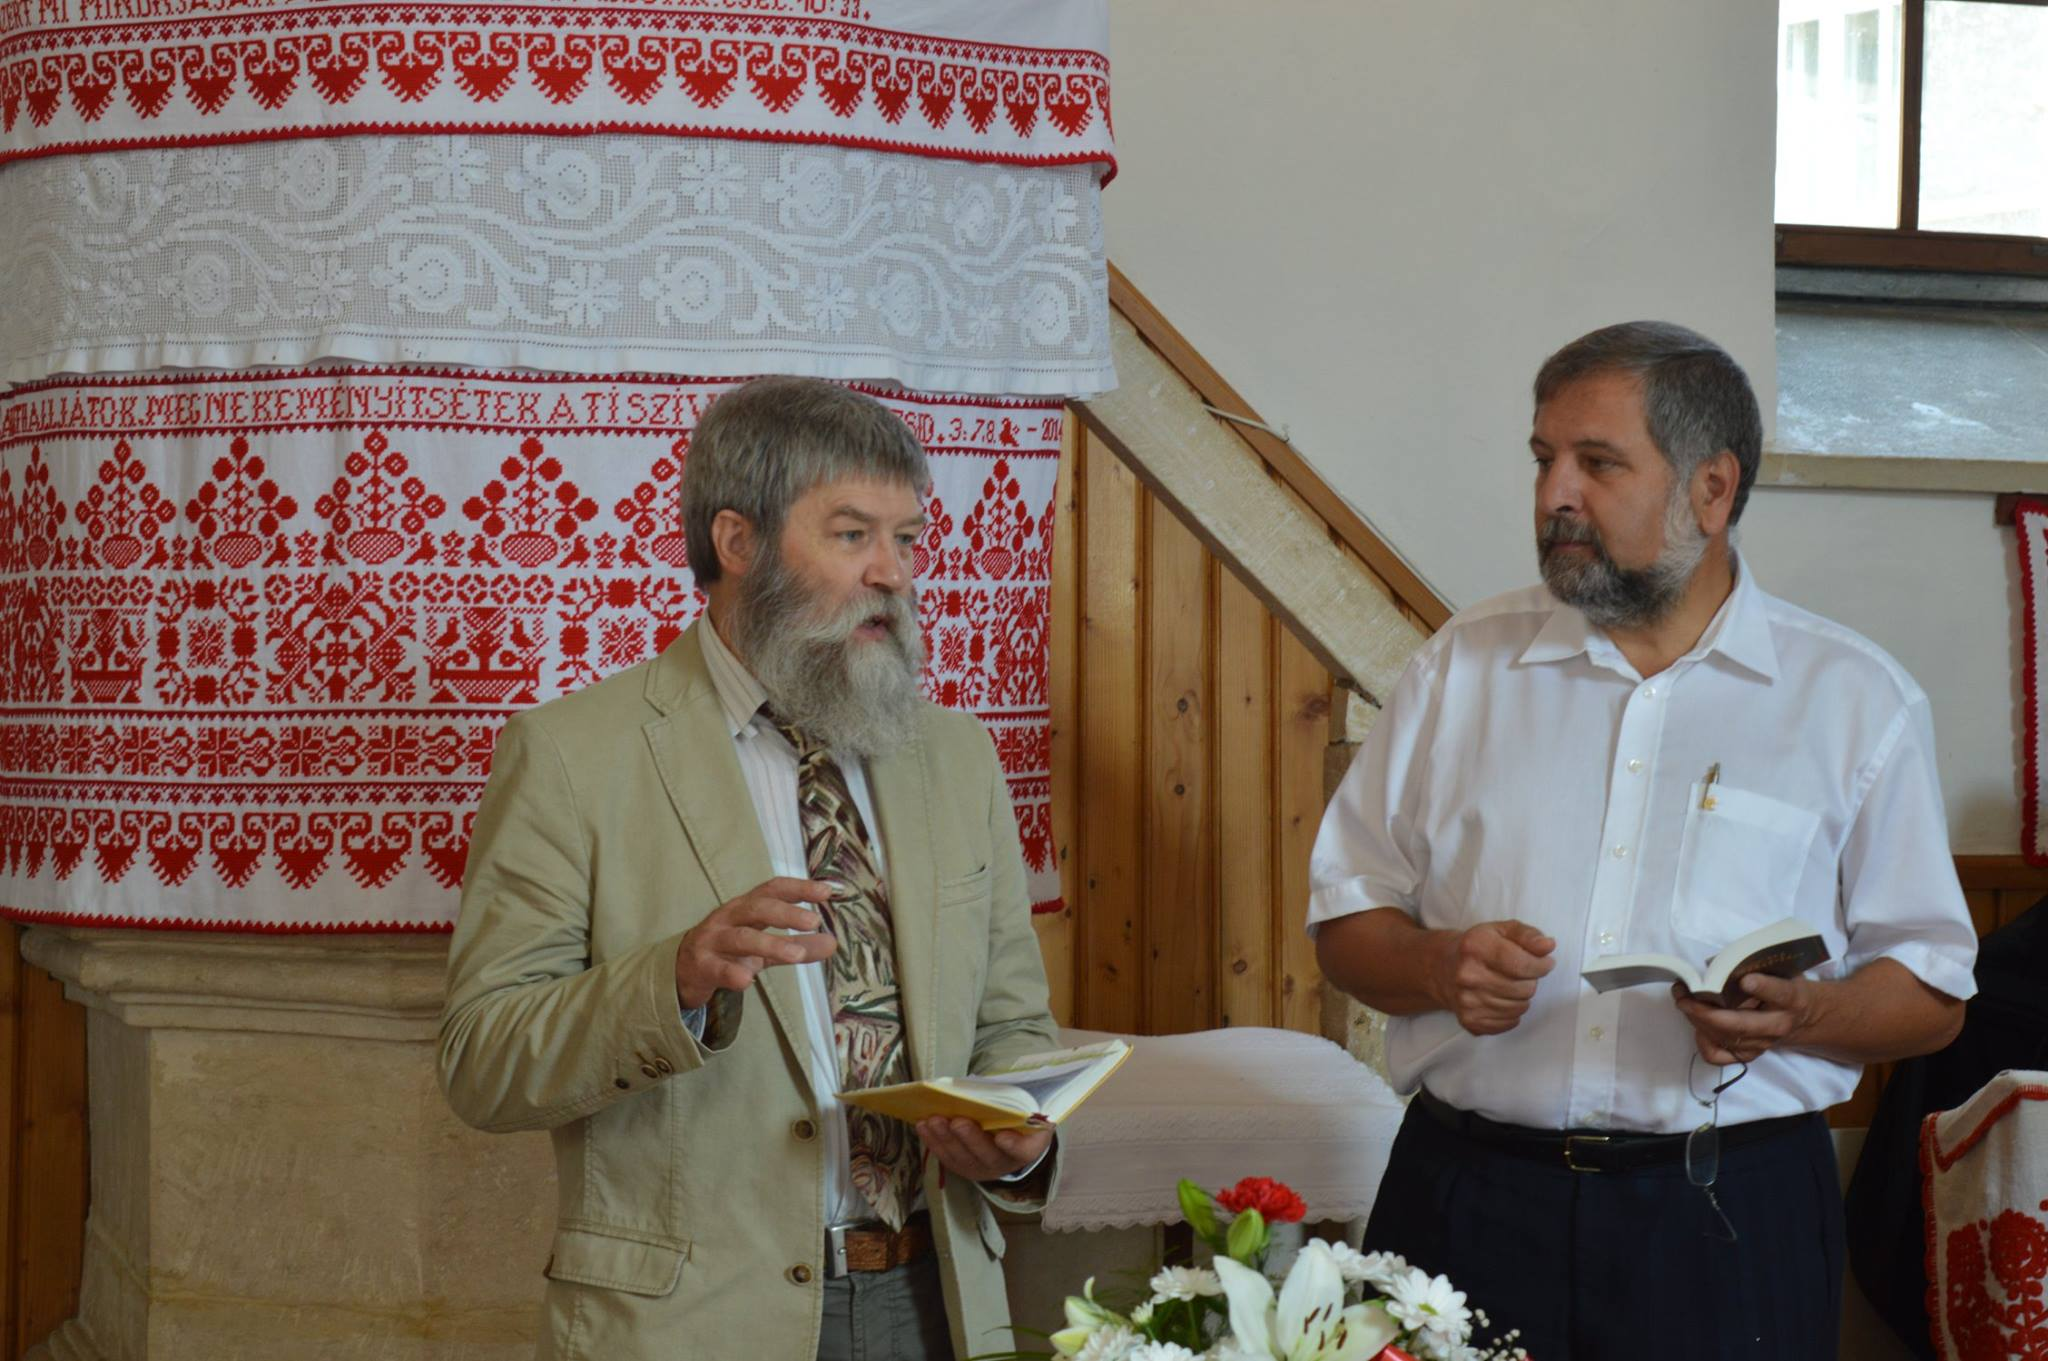 Mr. Andreas A. Rudolf and Rev. Kálmán Adorján